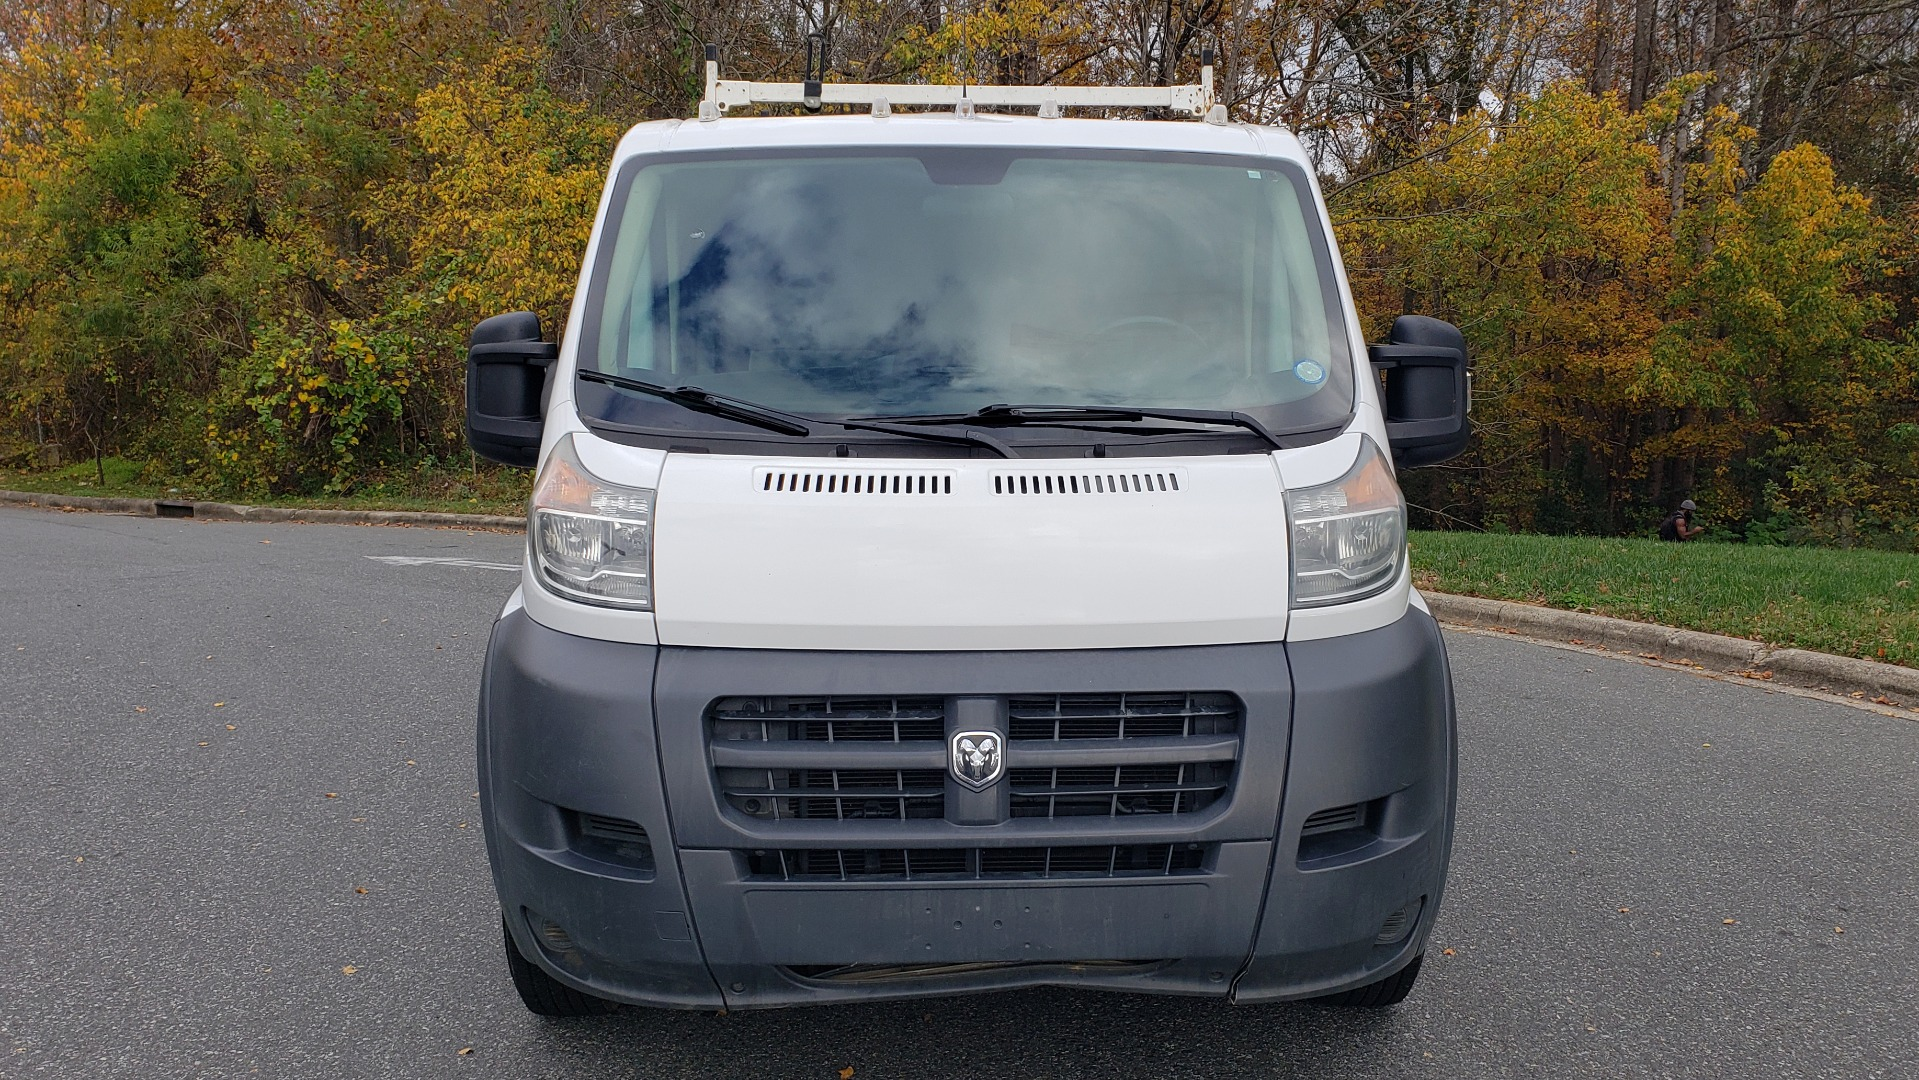 Used 2015 Ram PROMASTER CARGO VAN 136-INCH WB / LOW ROOF / LADDER RACK / INSIDE RACKS for sale $16,995 at Formula Imports in Charlotte NC 28227 17